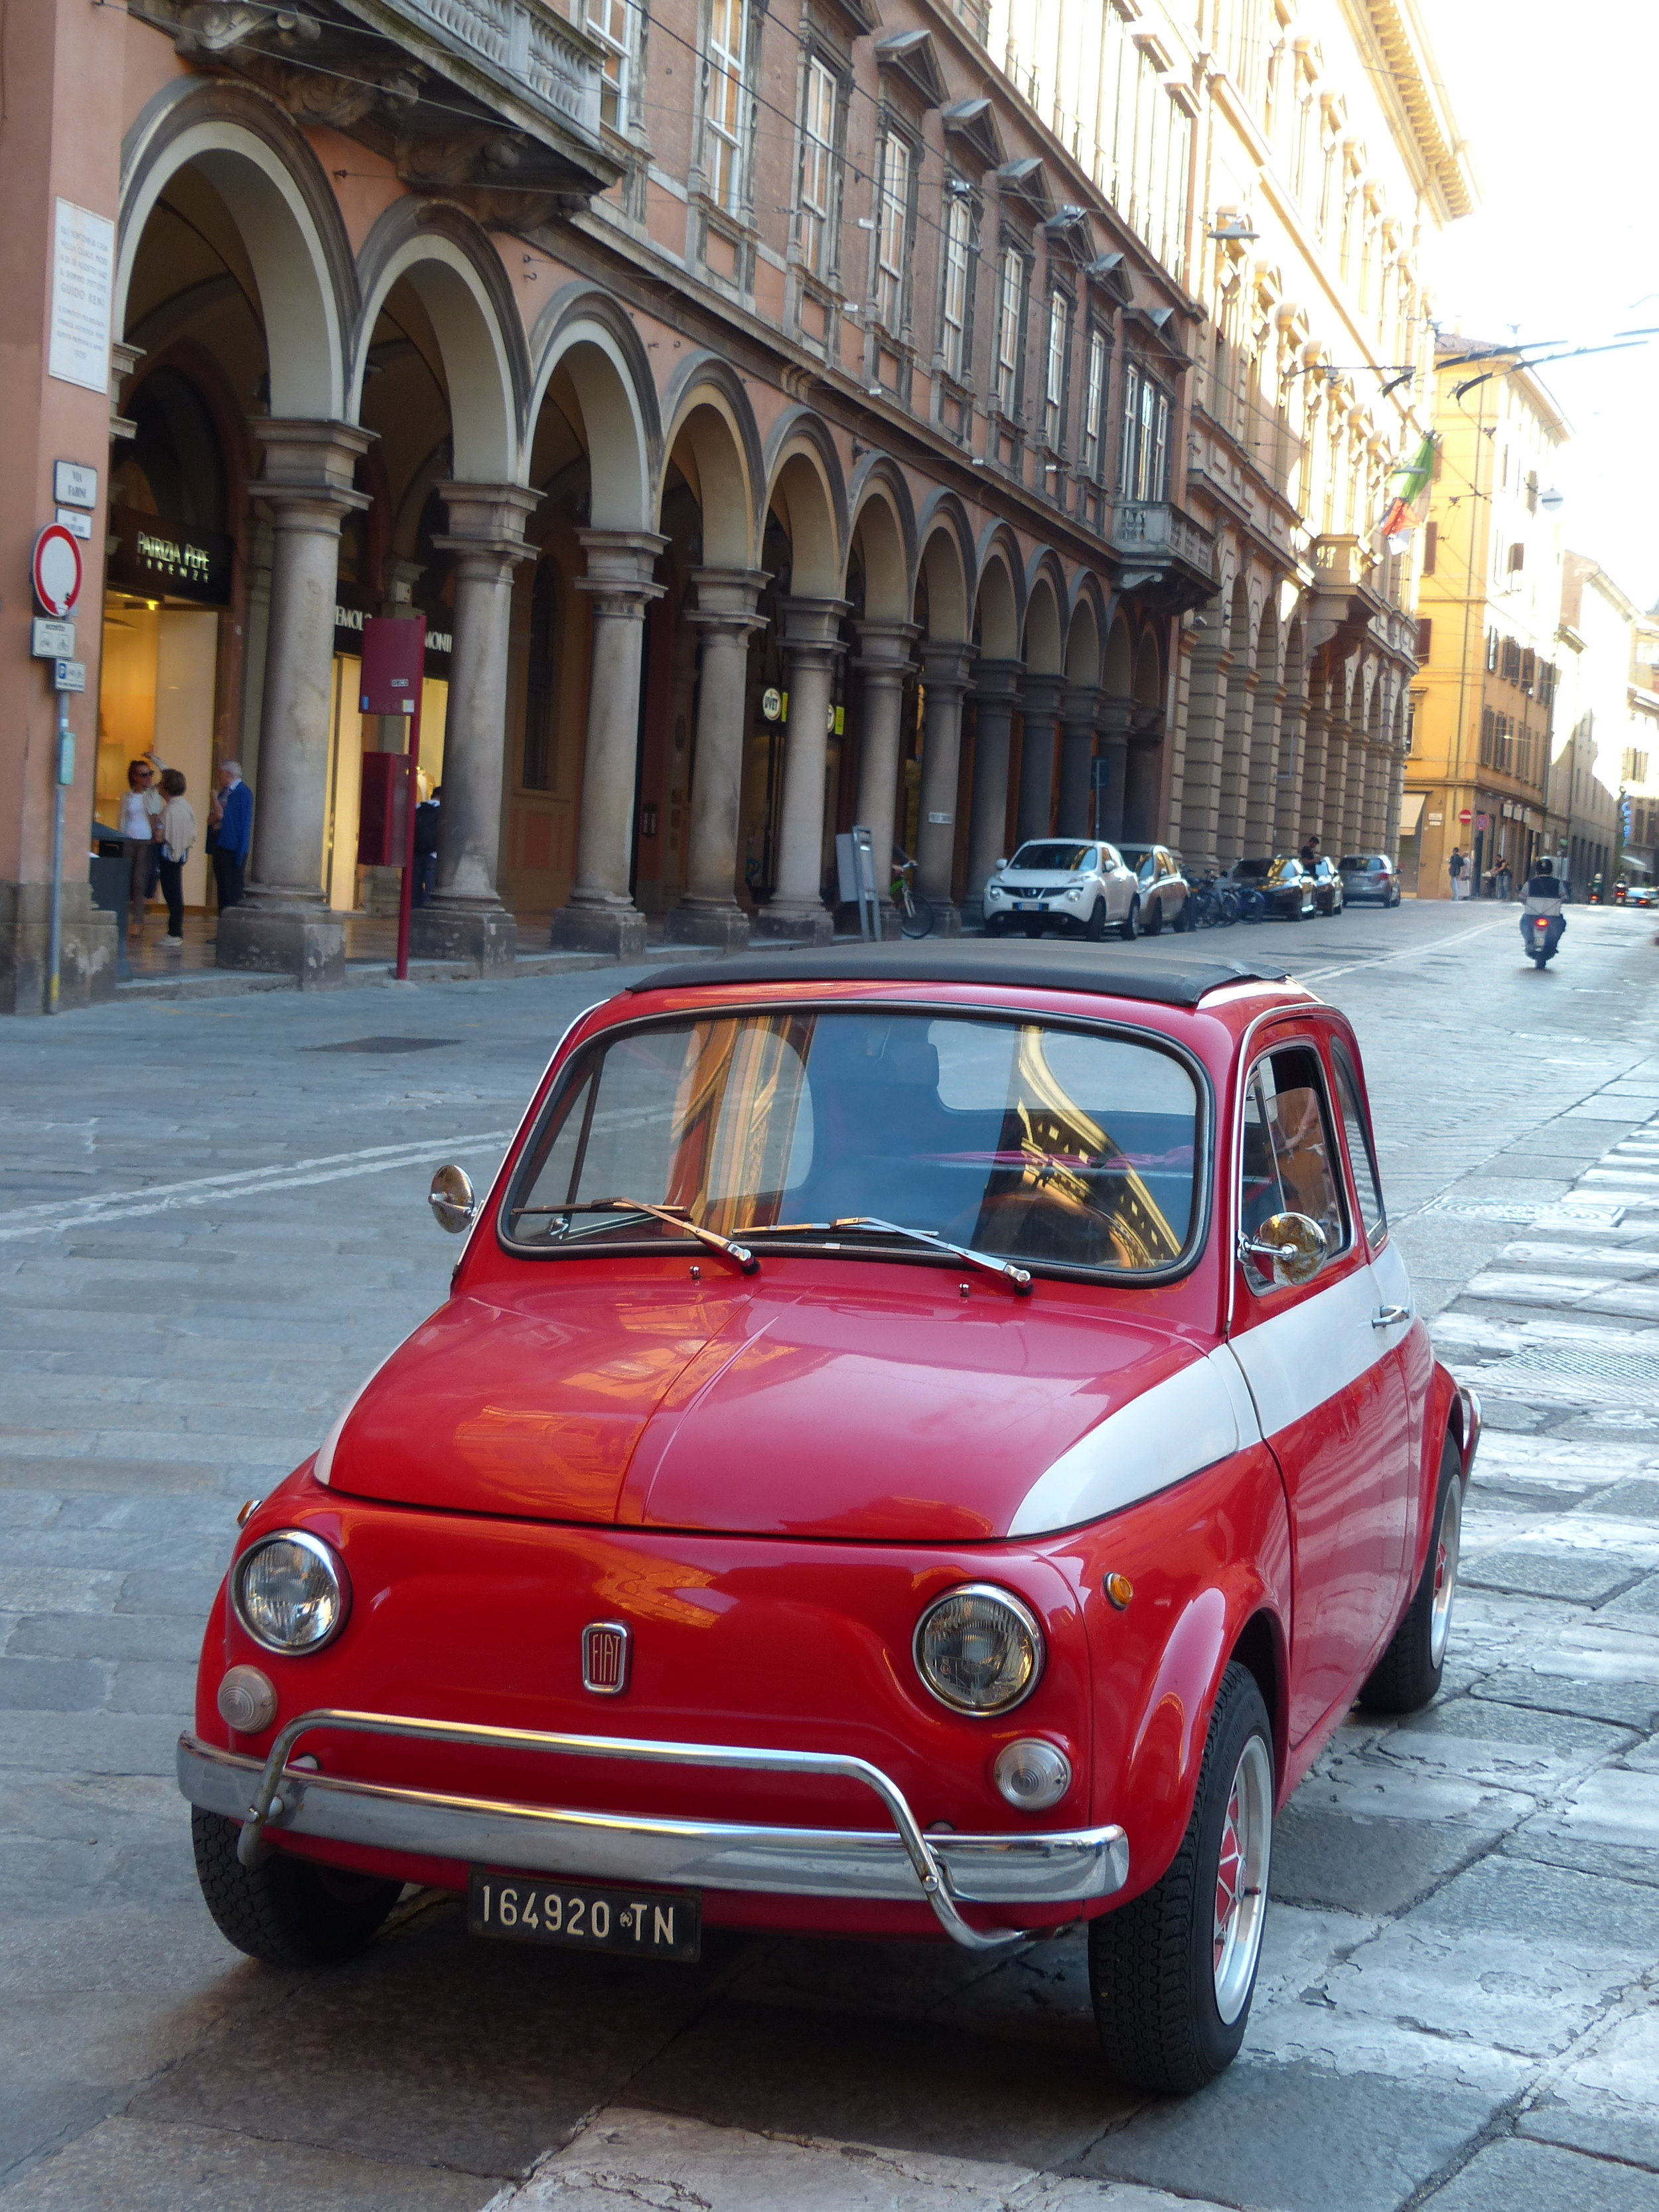 red car in bologna, Italy